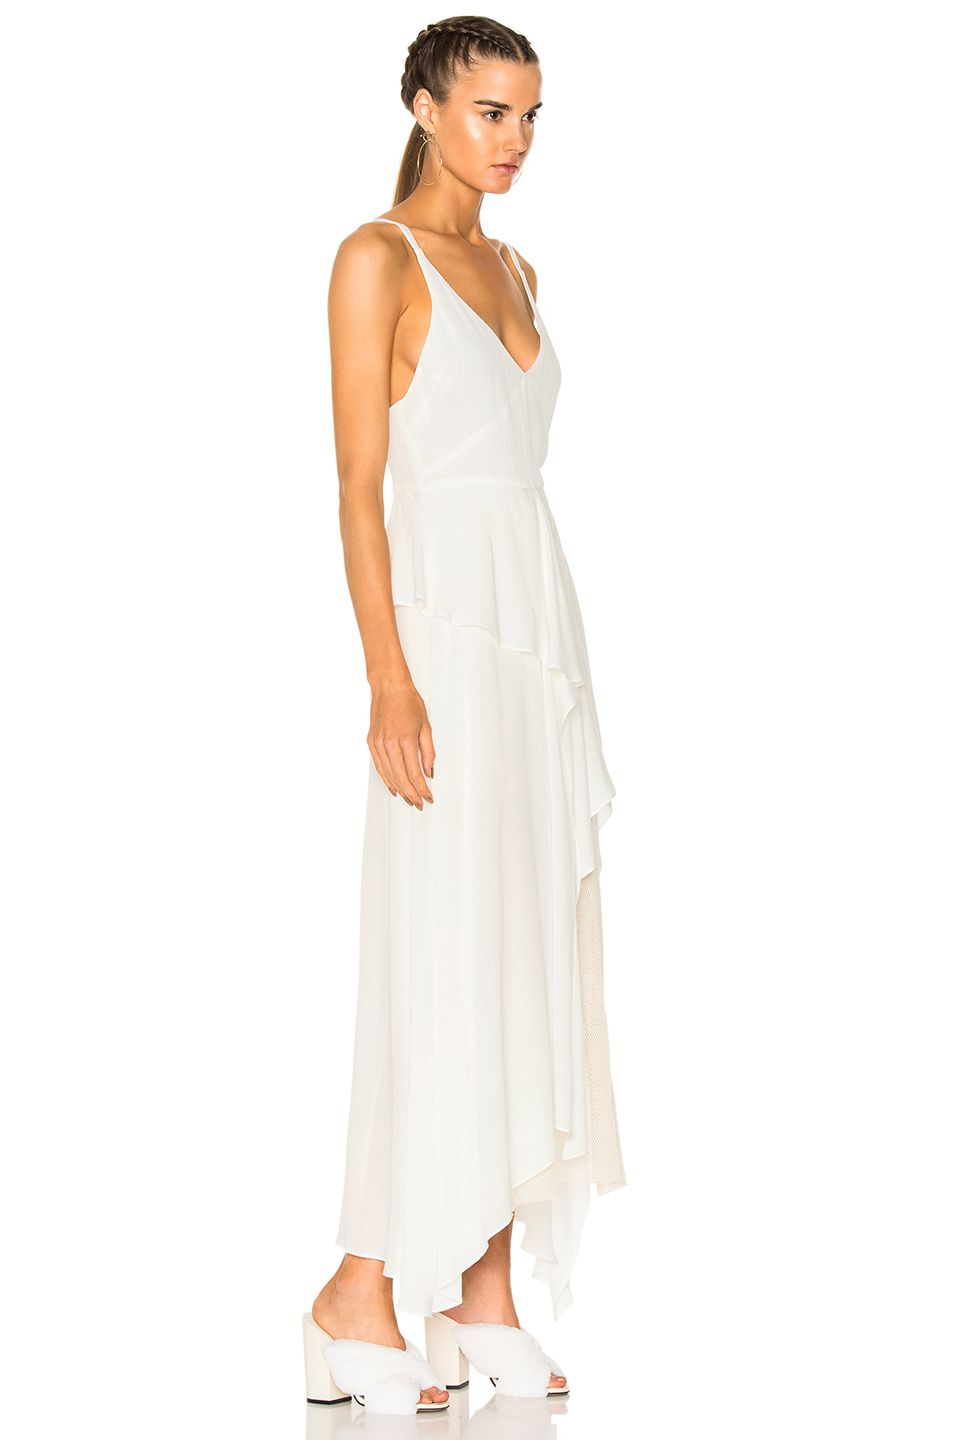 Image 2 of rachel comey catch dress in white white dress